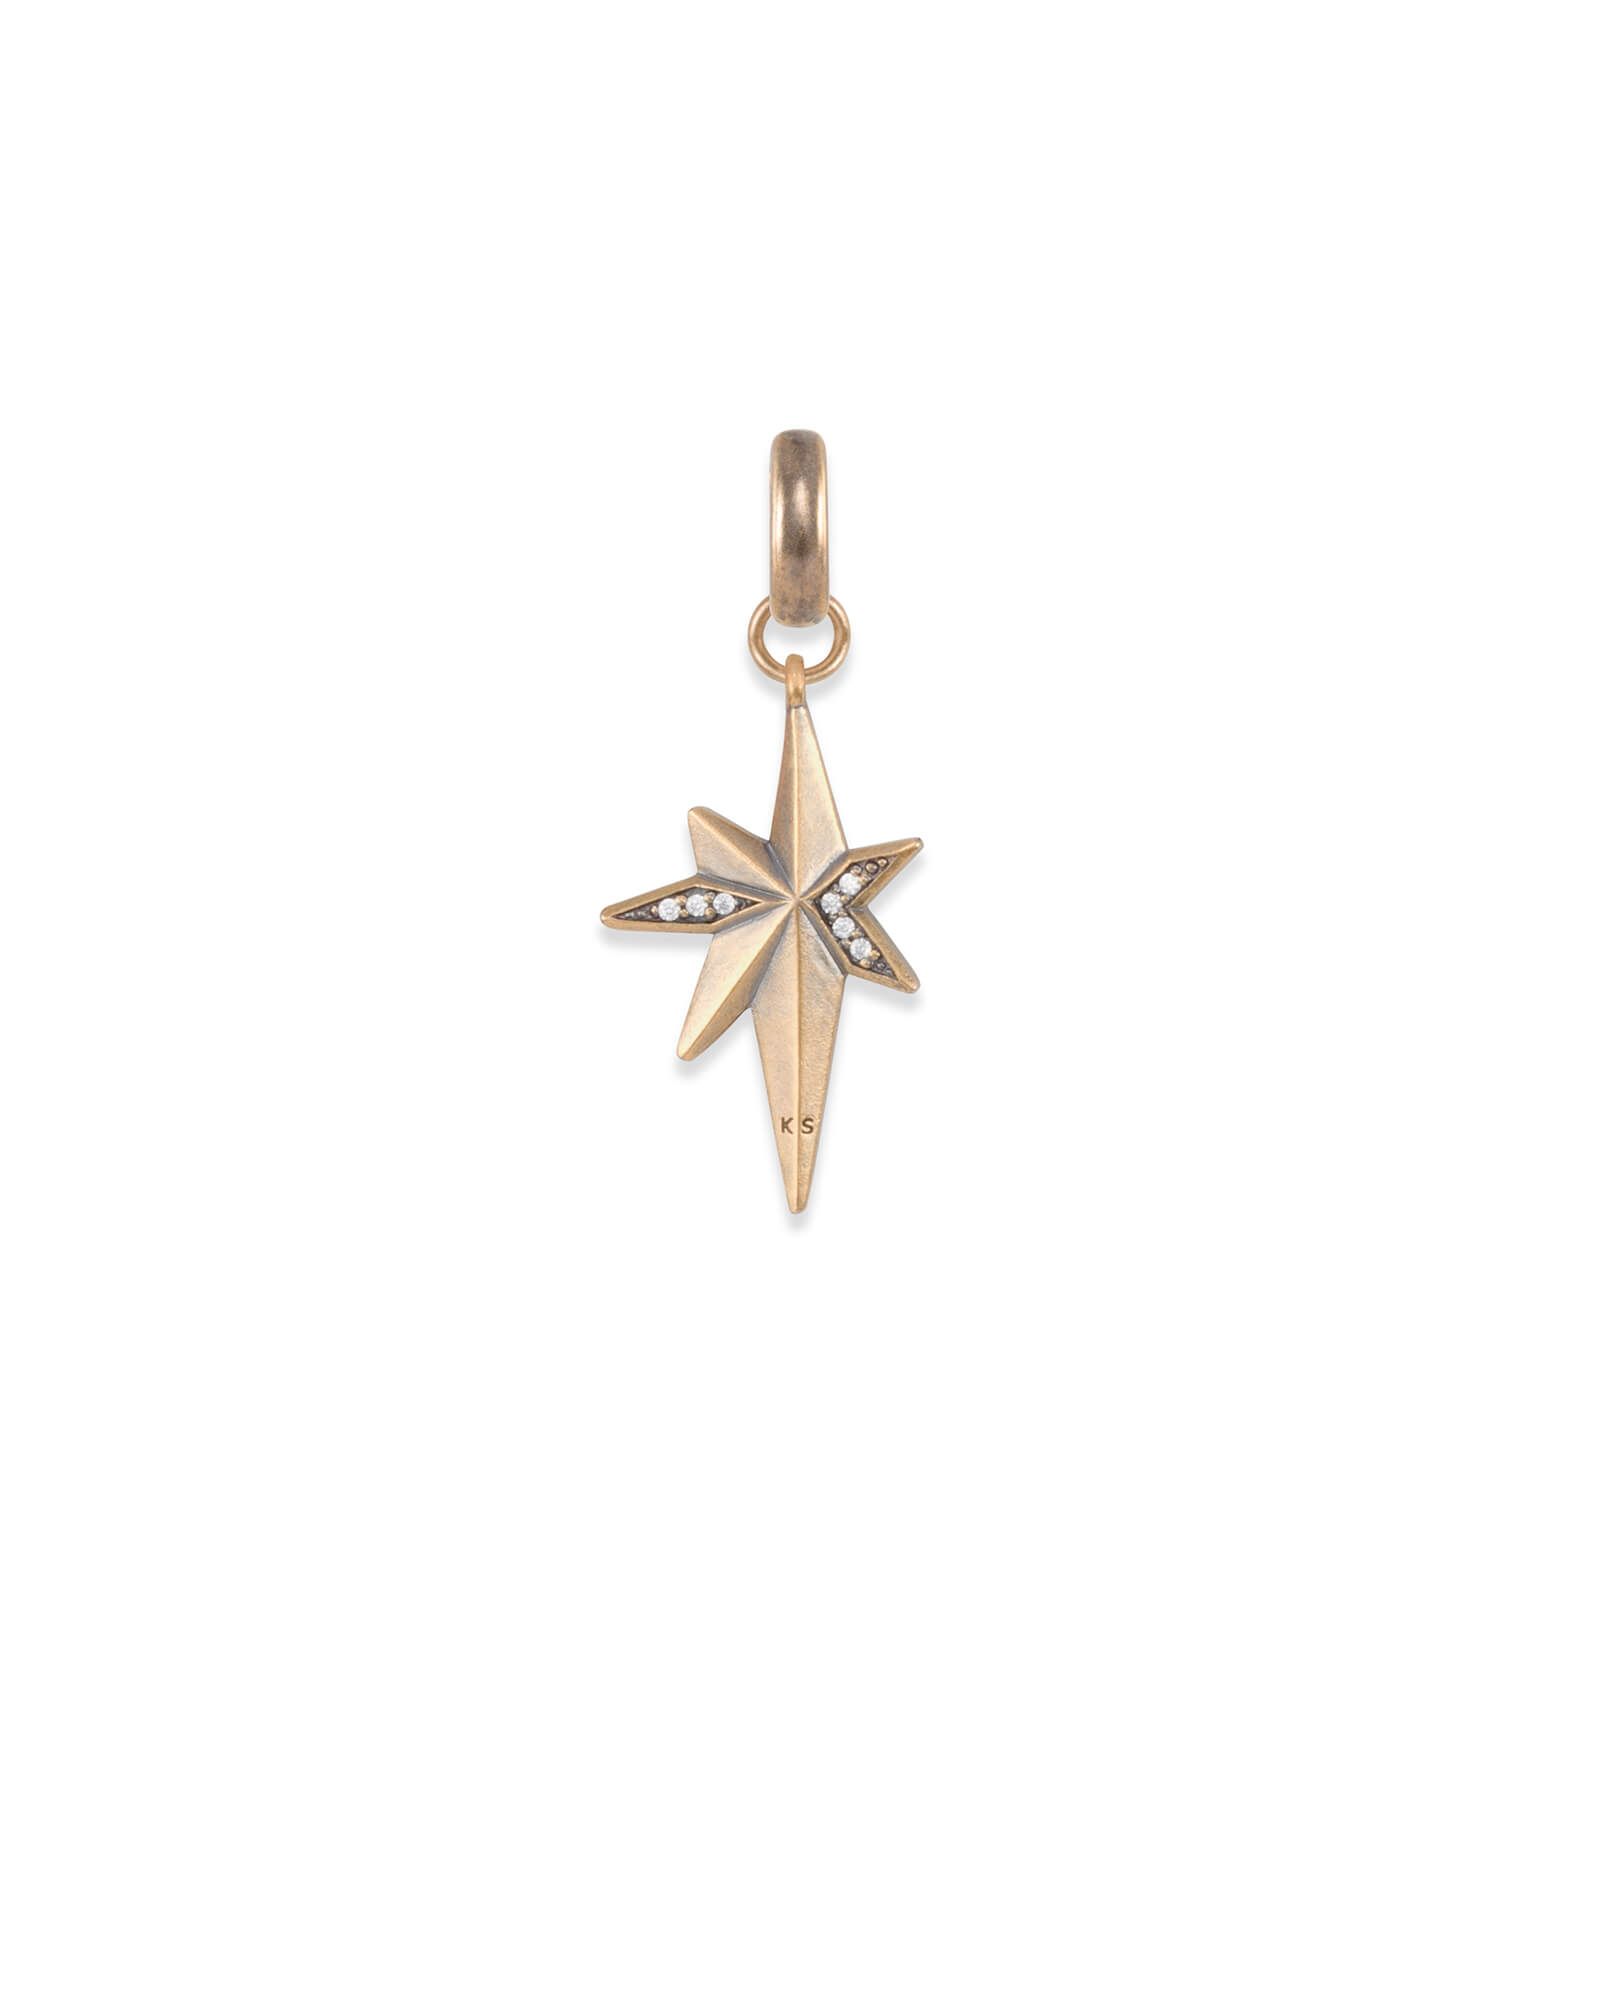 North Star Charm in Vintage Gold